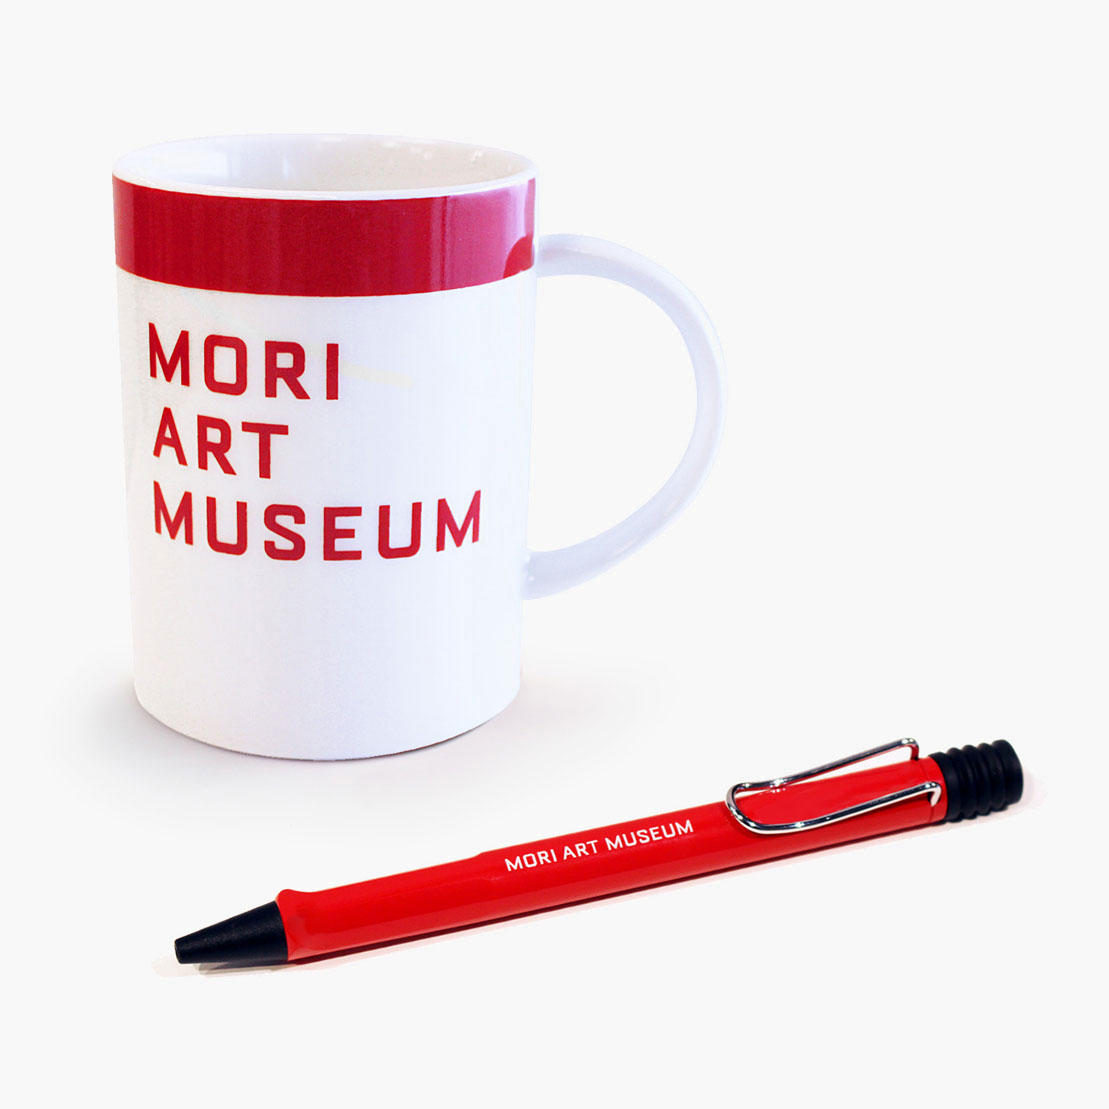 Mori Art Museum Original Mug Mori Art Museum Original LAMY Ball-point Pen